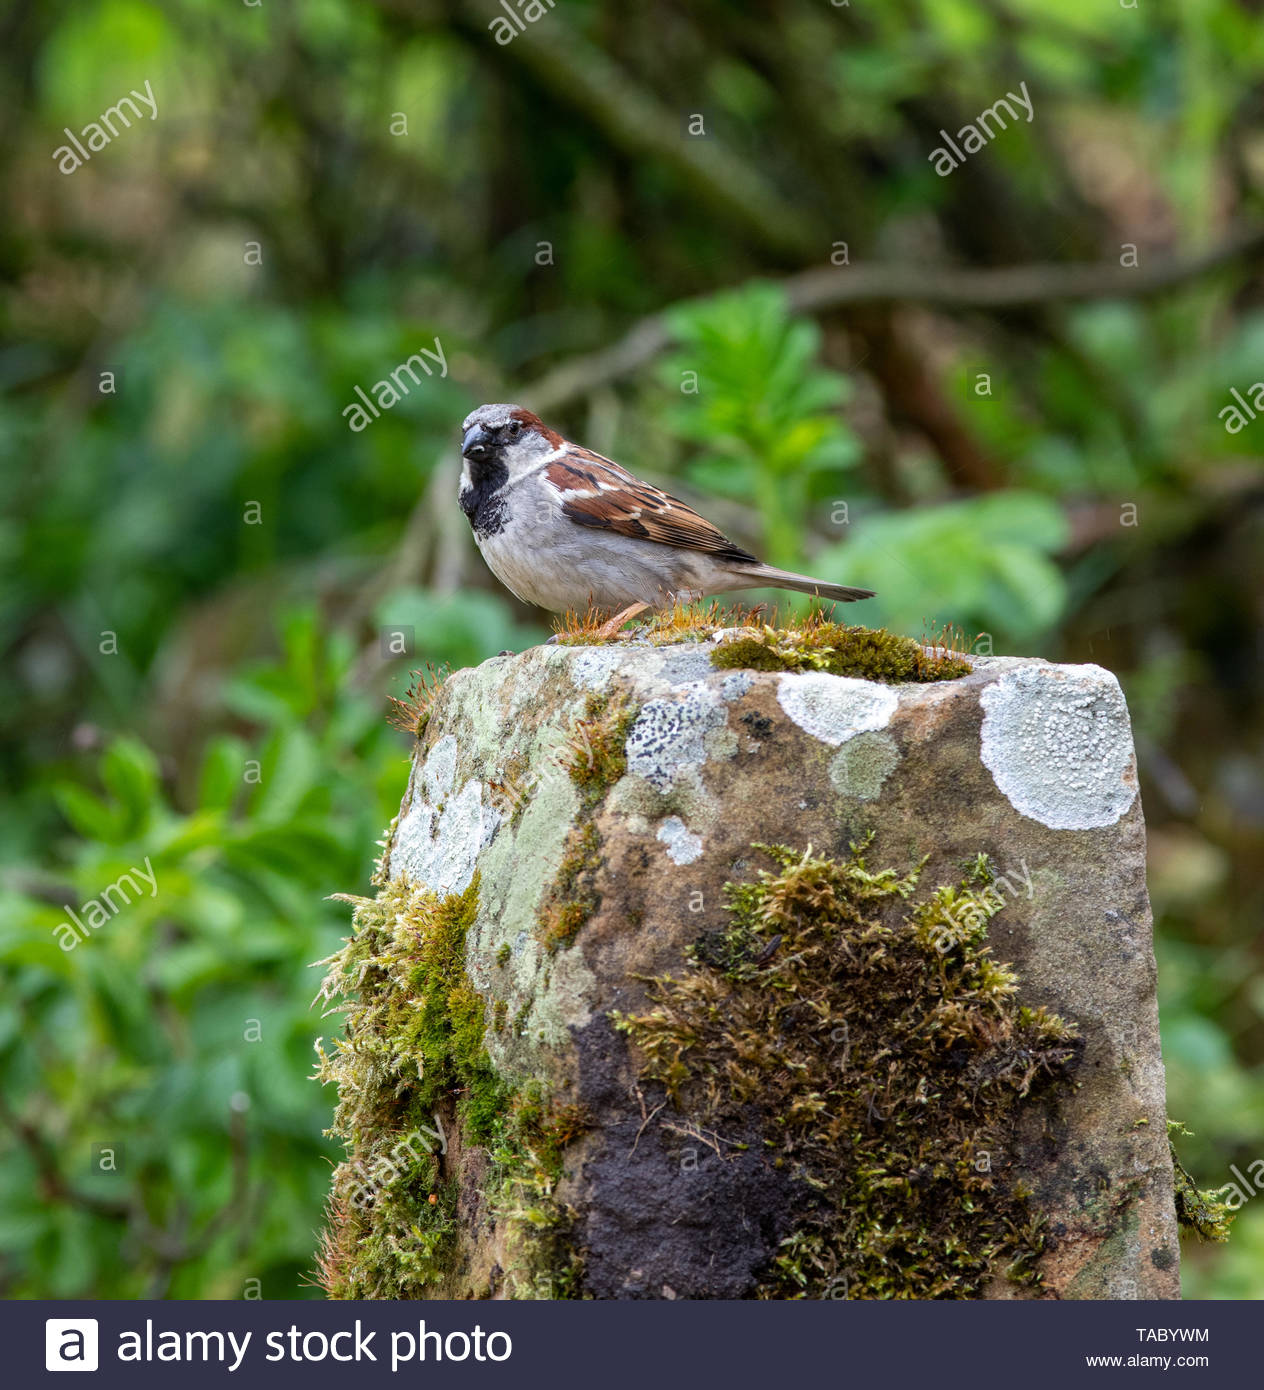 House Sparrow (Passer domesticus) perched on moss covered sandstone - Stock Image